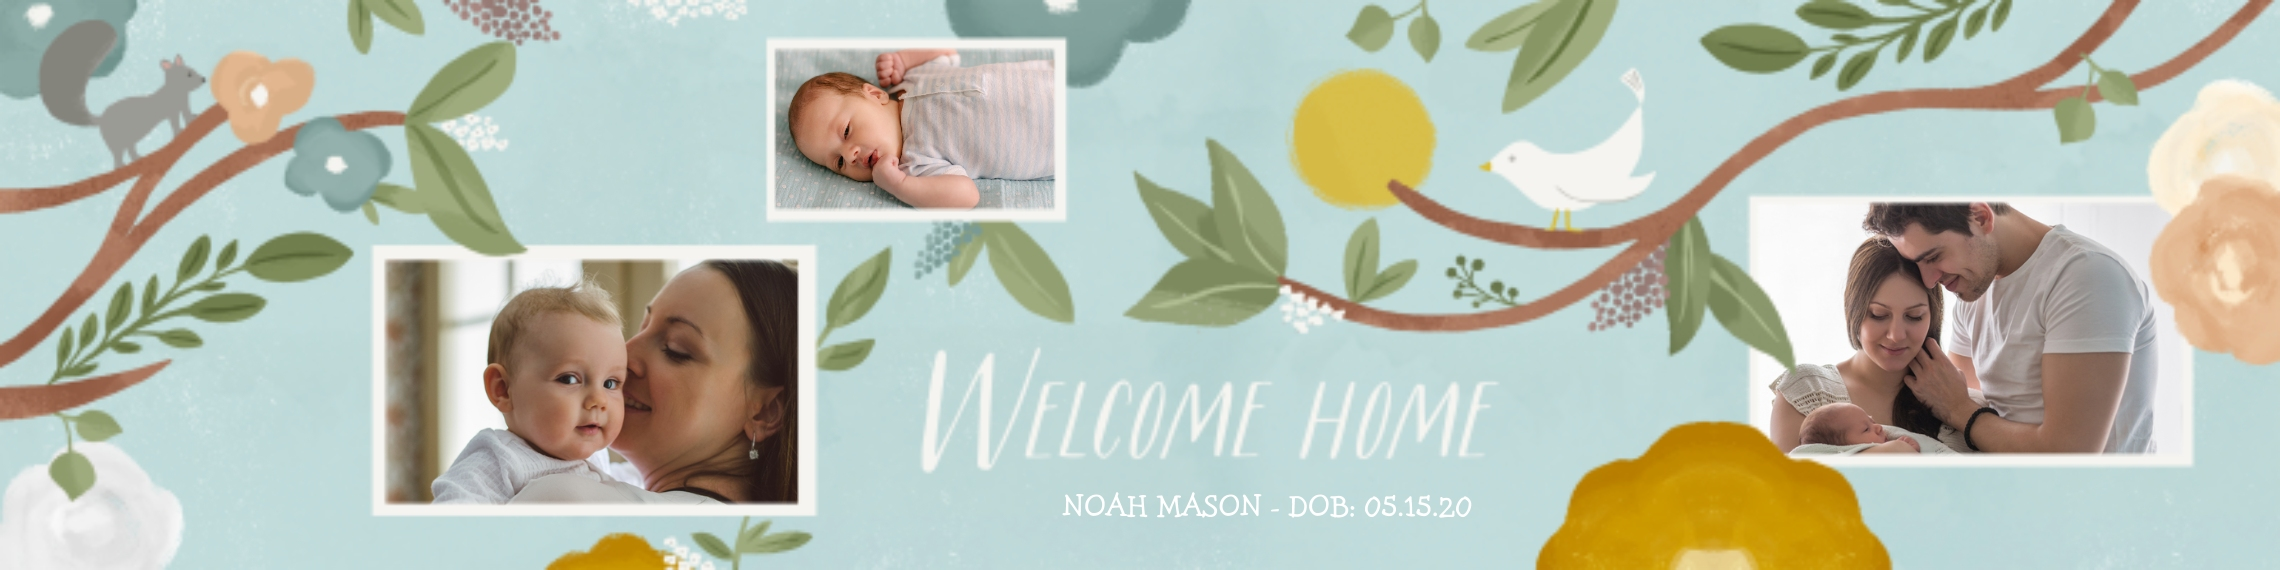 Baby + Kids 2x8 Adhesive Banner, Home Décor -Watercolor Welcome